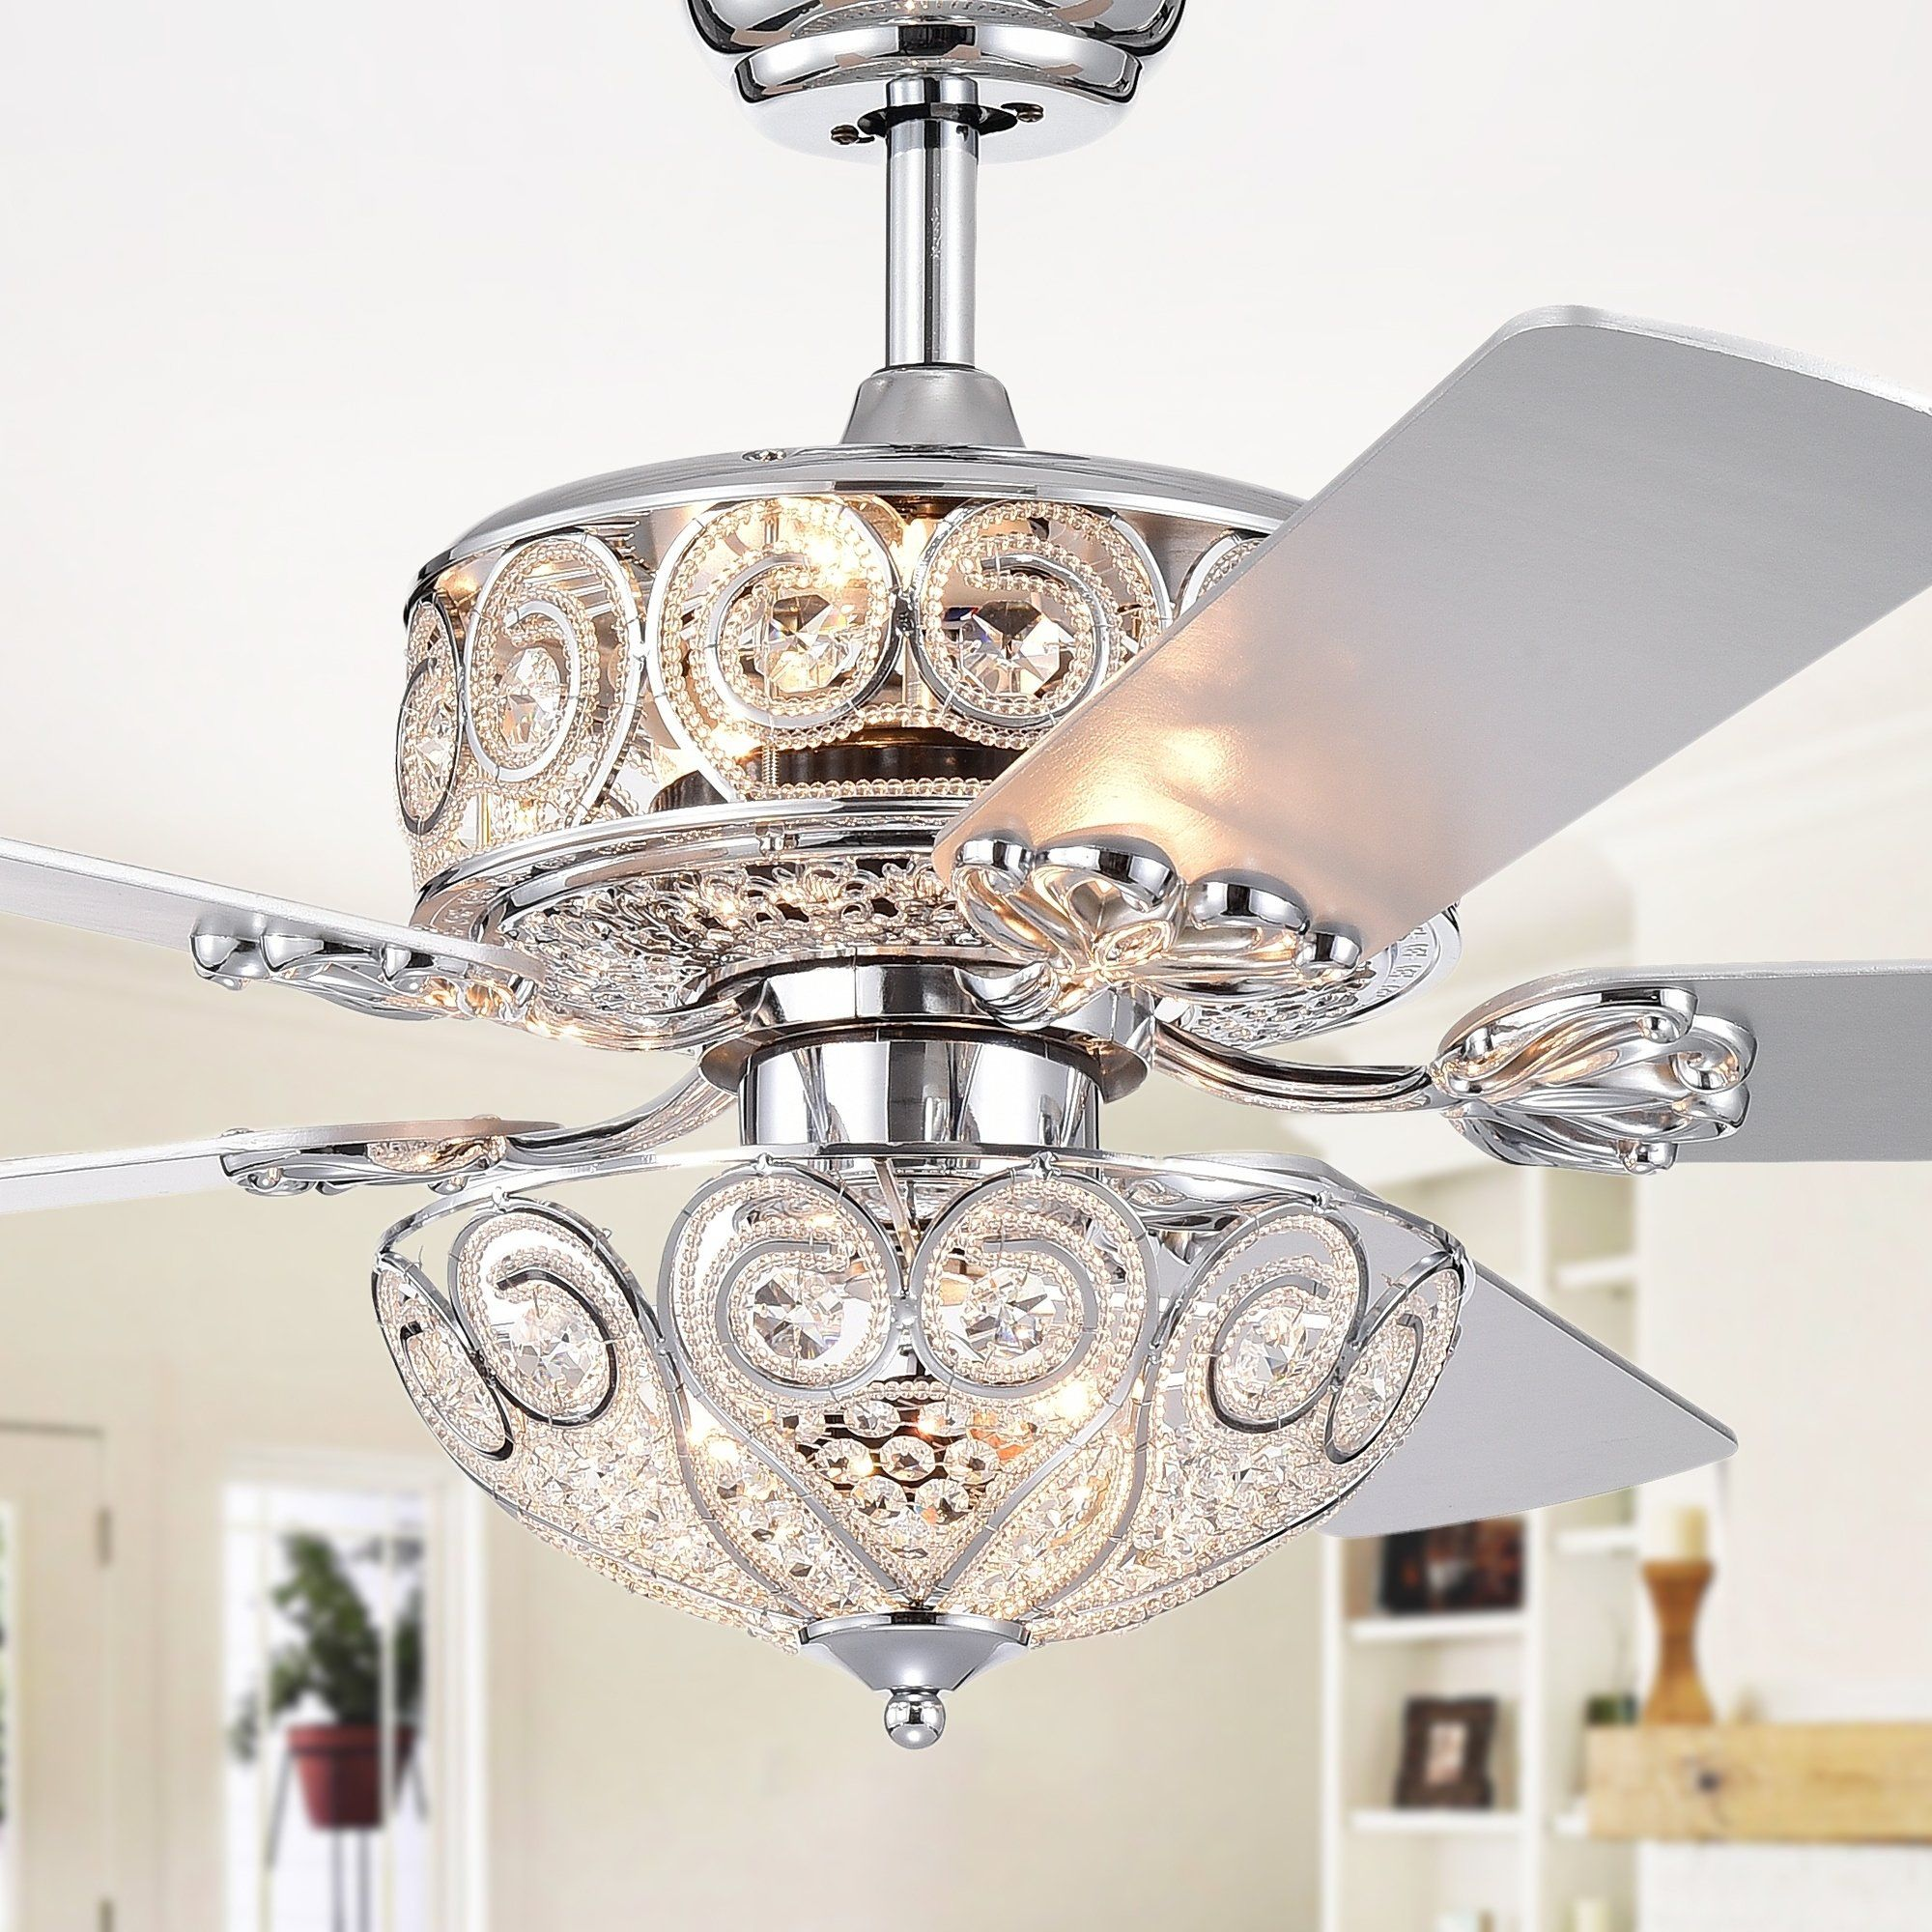 Premium Housing And Glass Ceiling Fan Chandelier Crystal Ceiling Fan Ceiling Fan